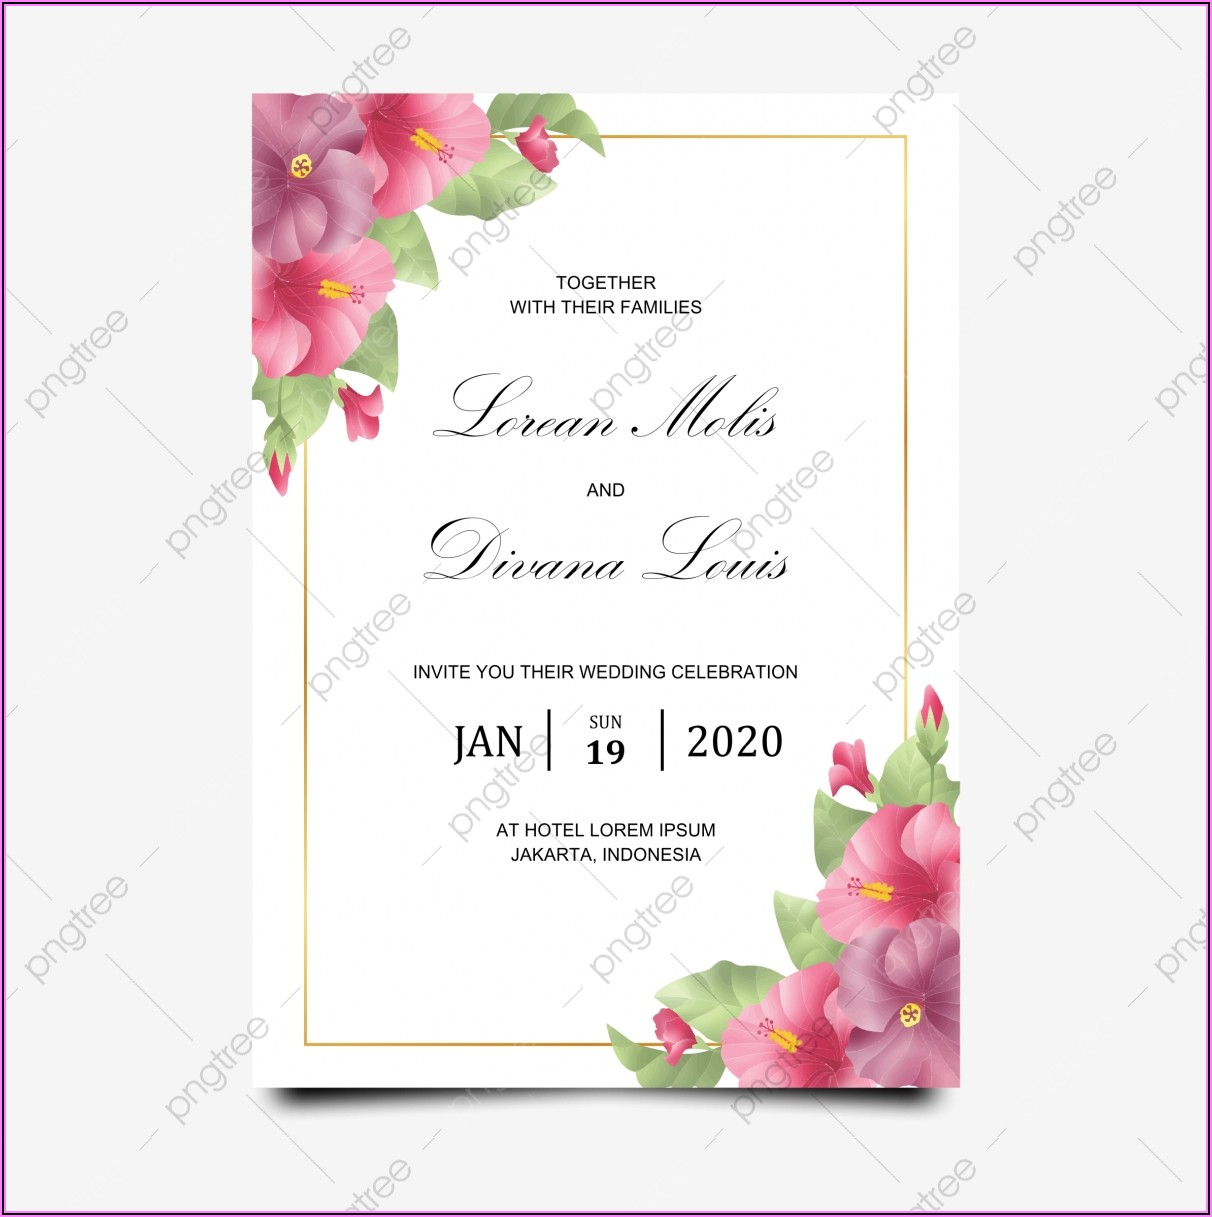 Invitation Card Template Png